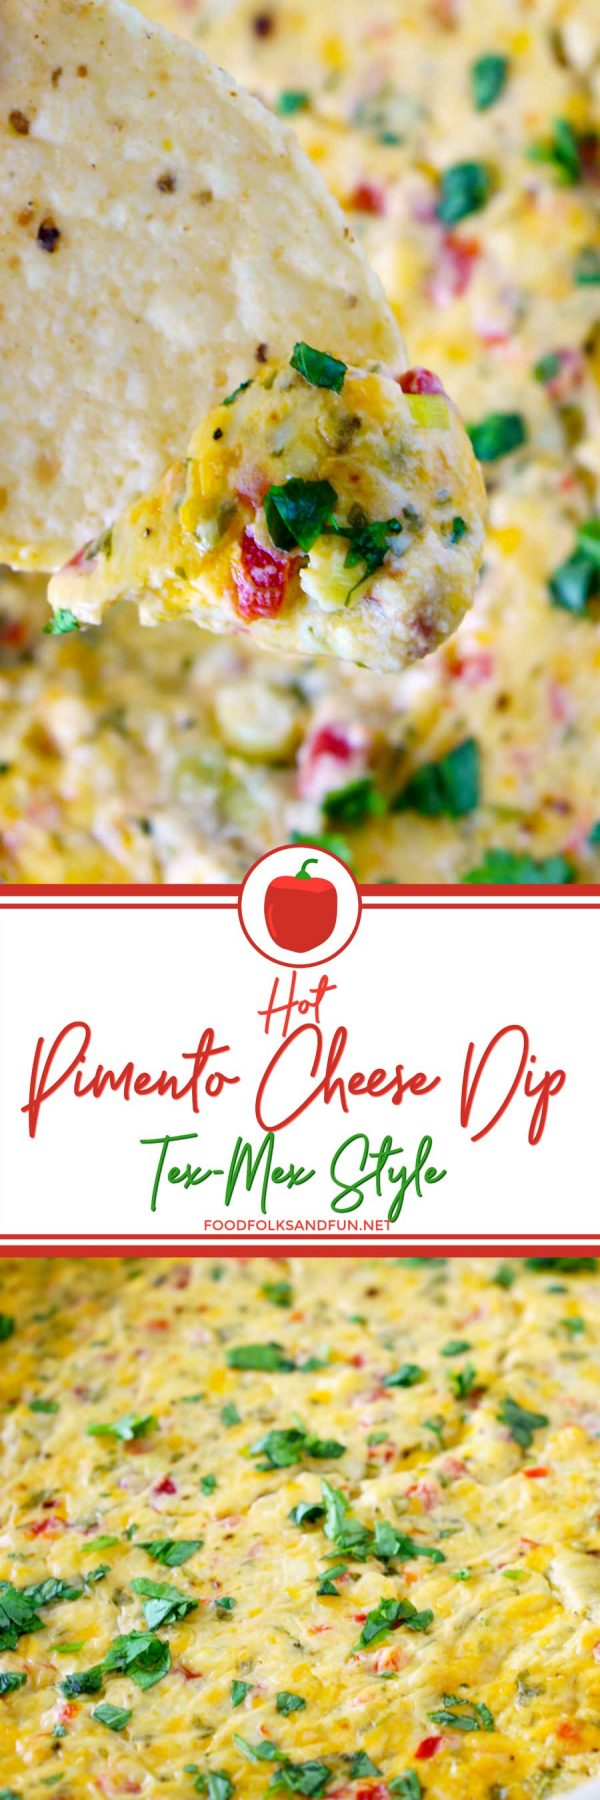 Hot Pimento Cheese Dip - the stuff your geese-filled dreams are made of!